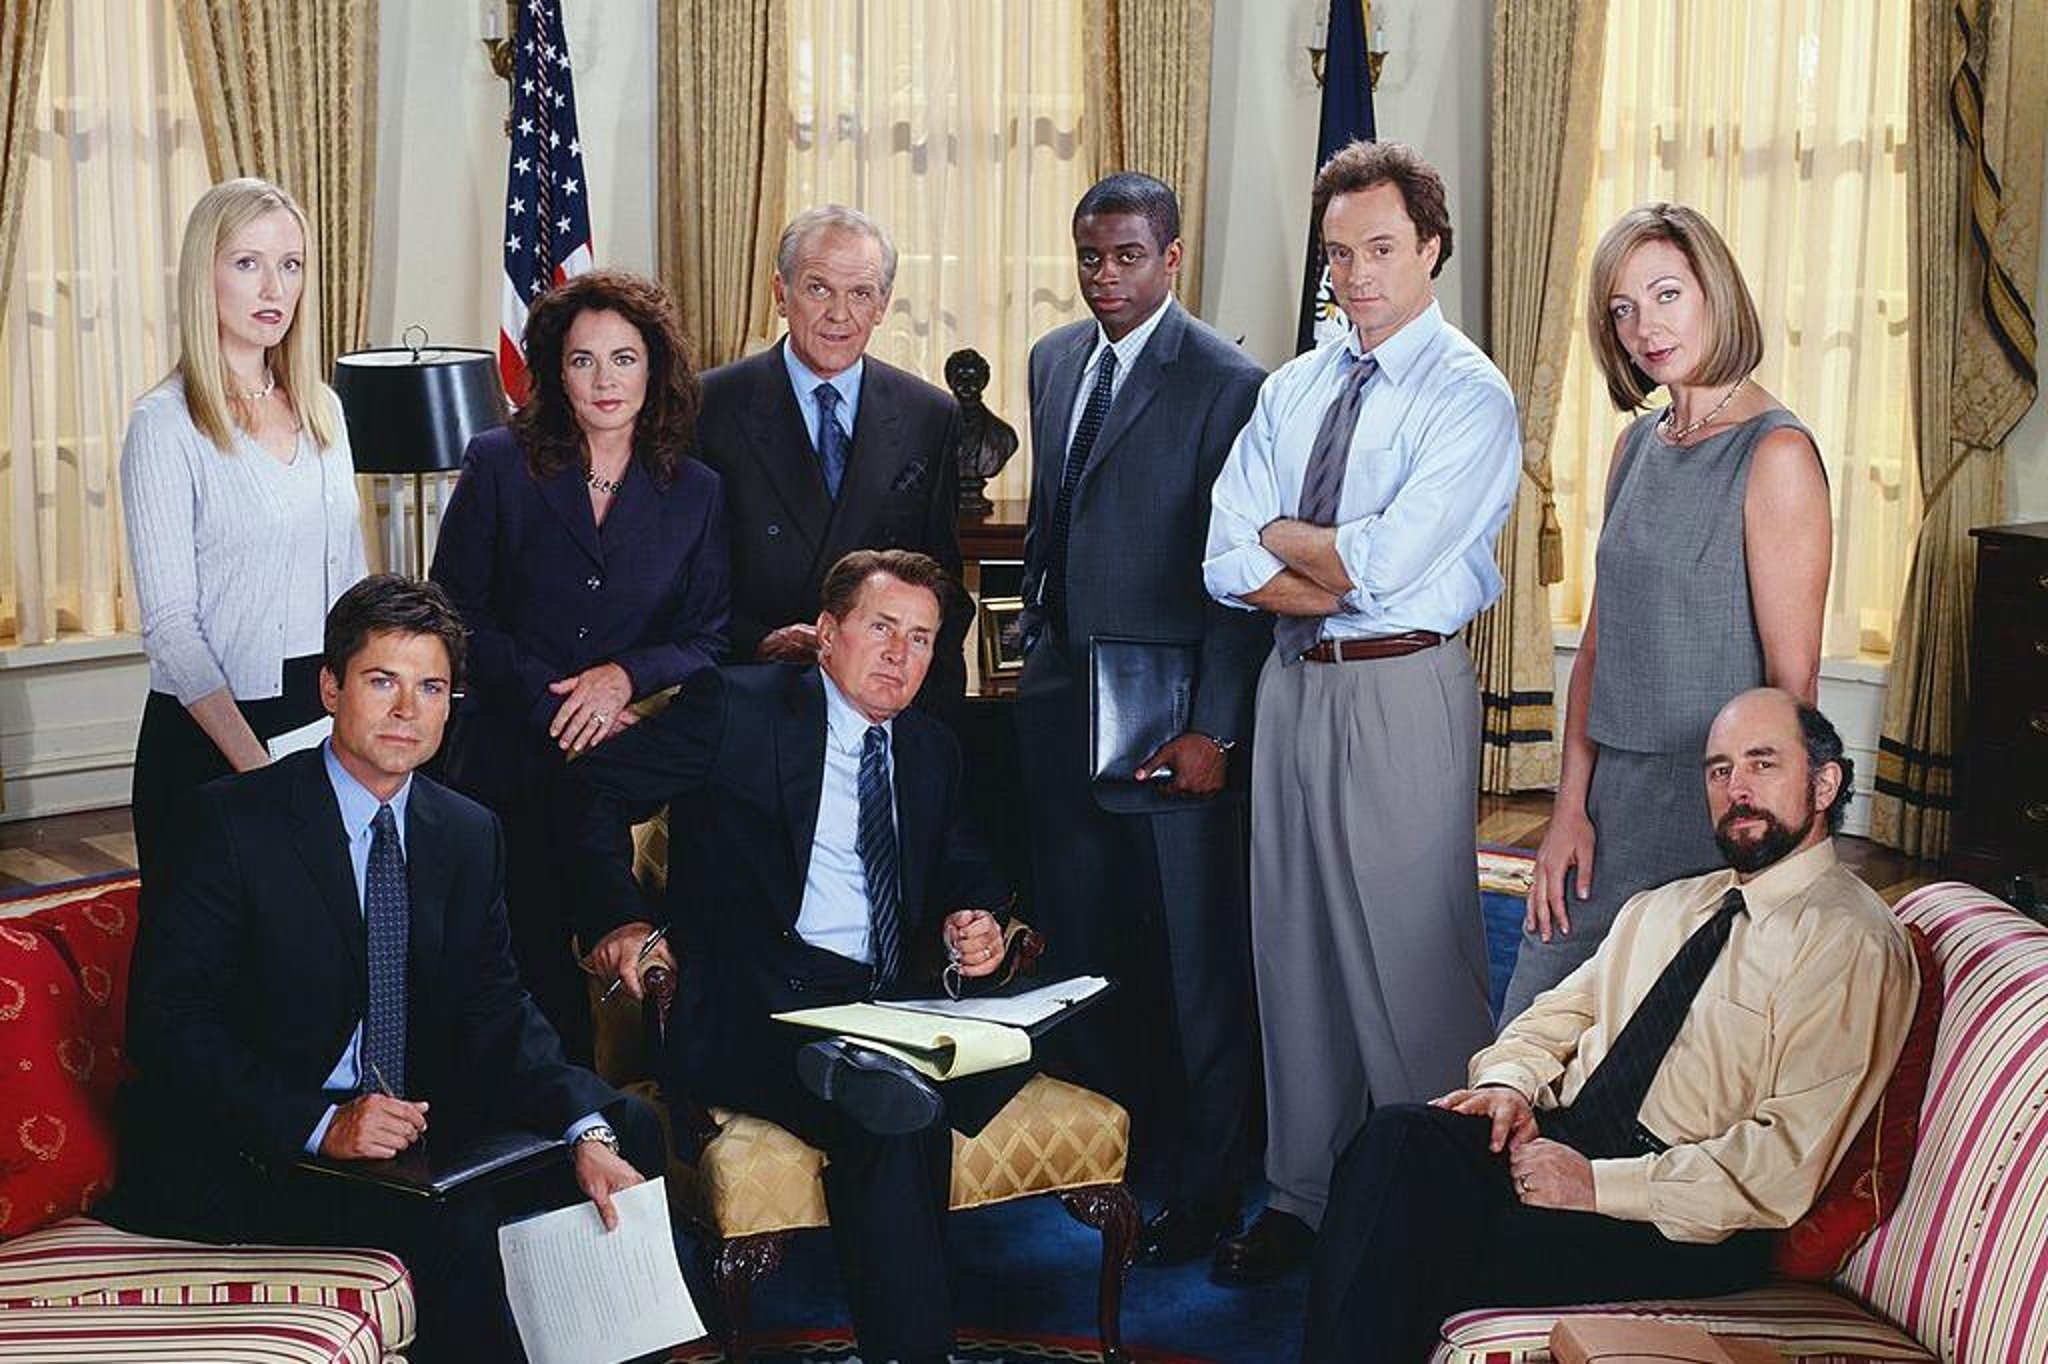 This is how to watch all seven seasons of The West Wing in the UK for free